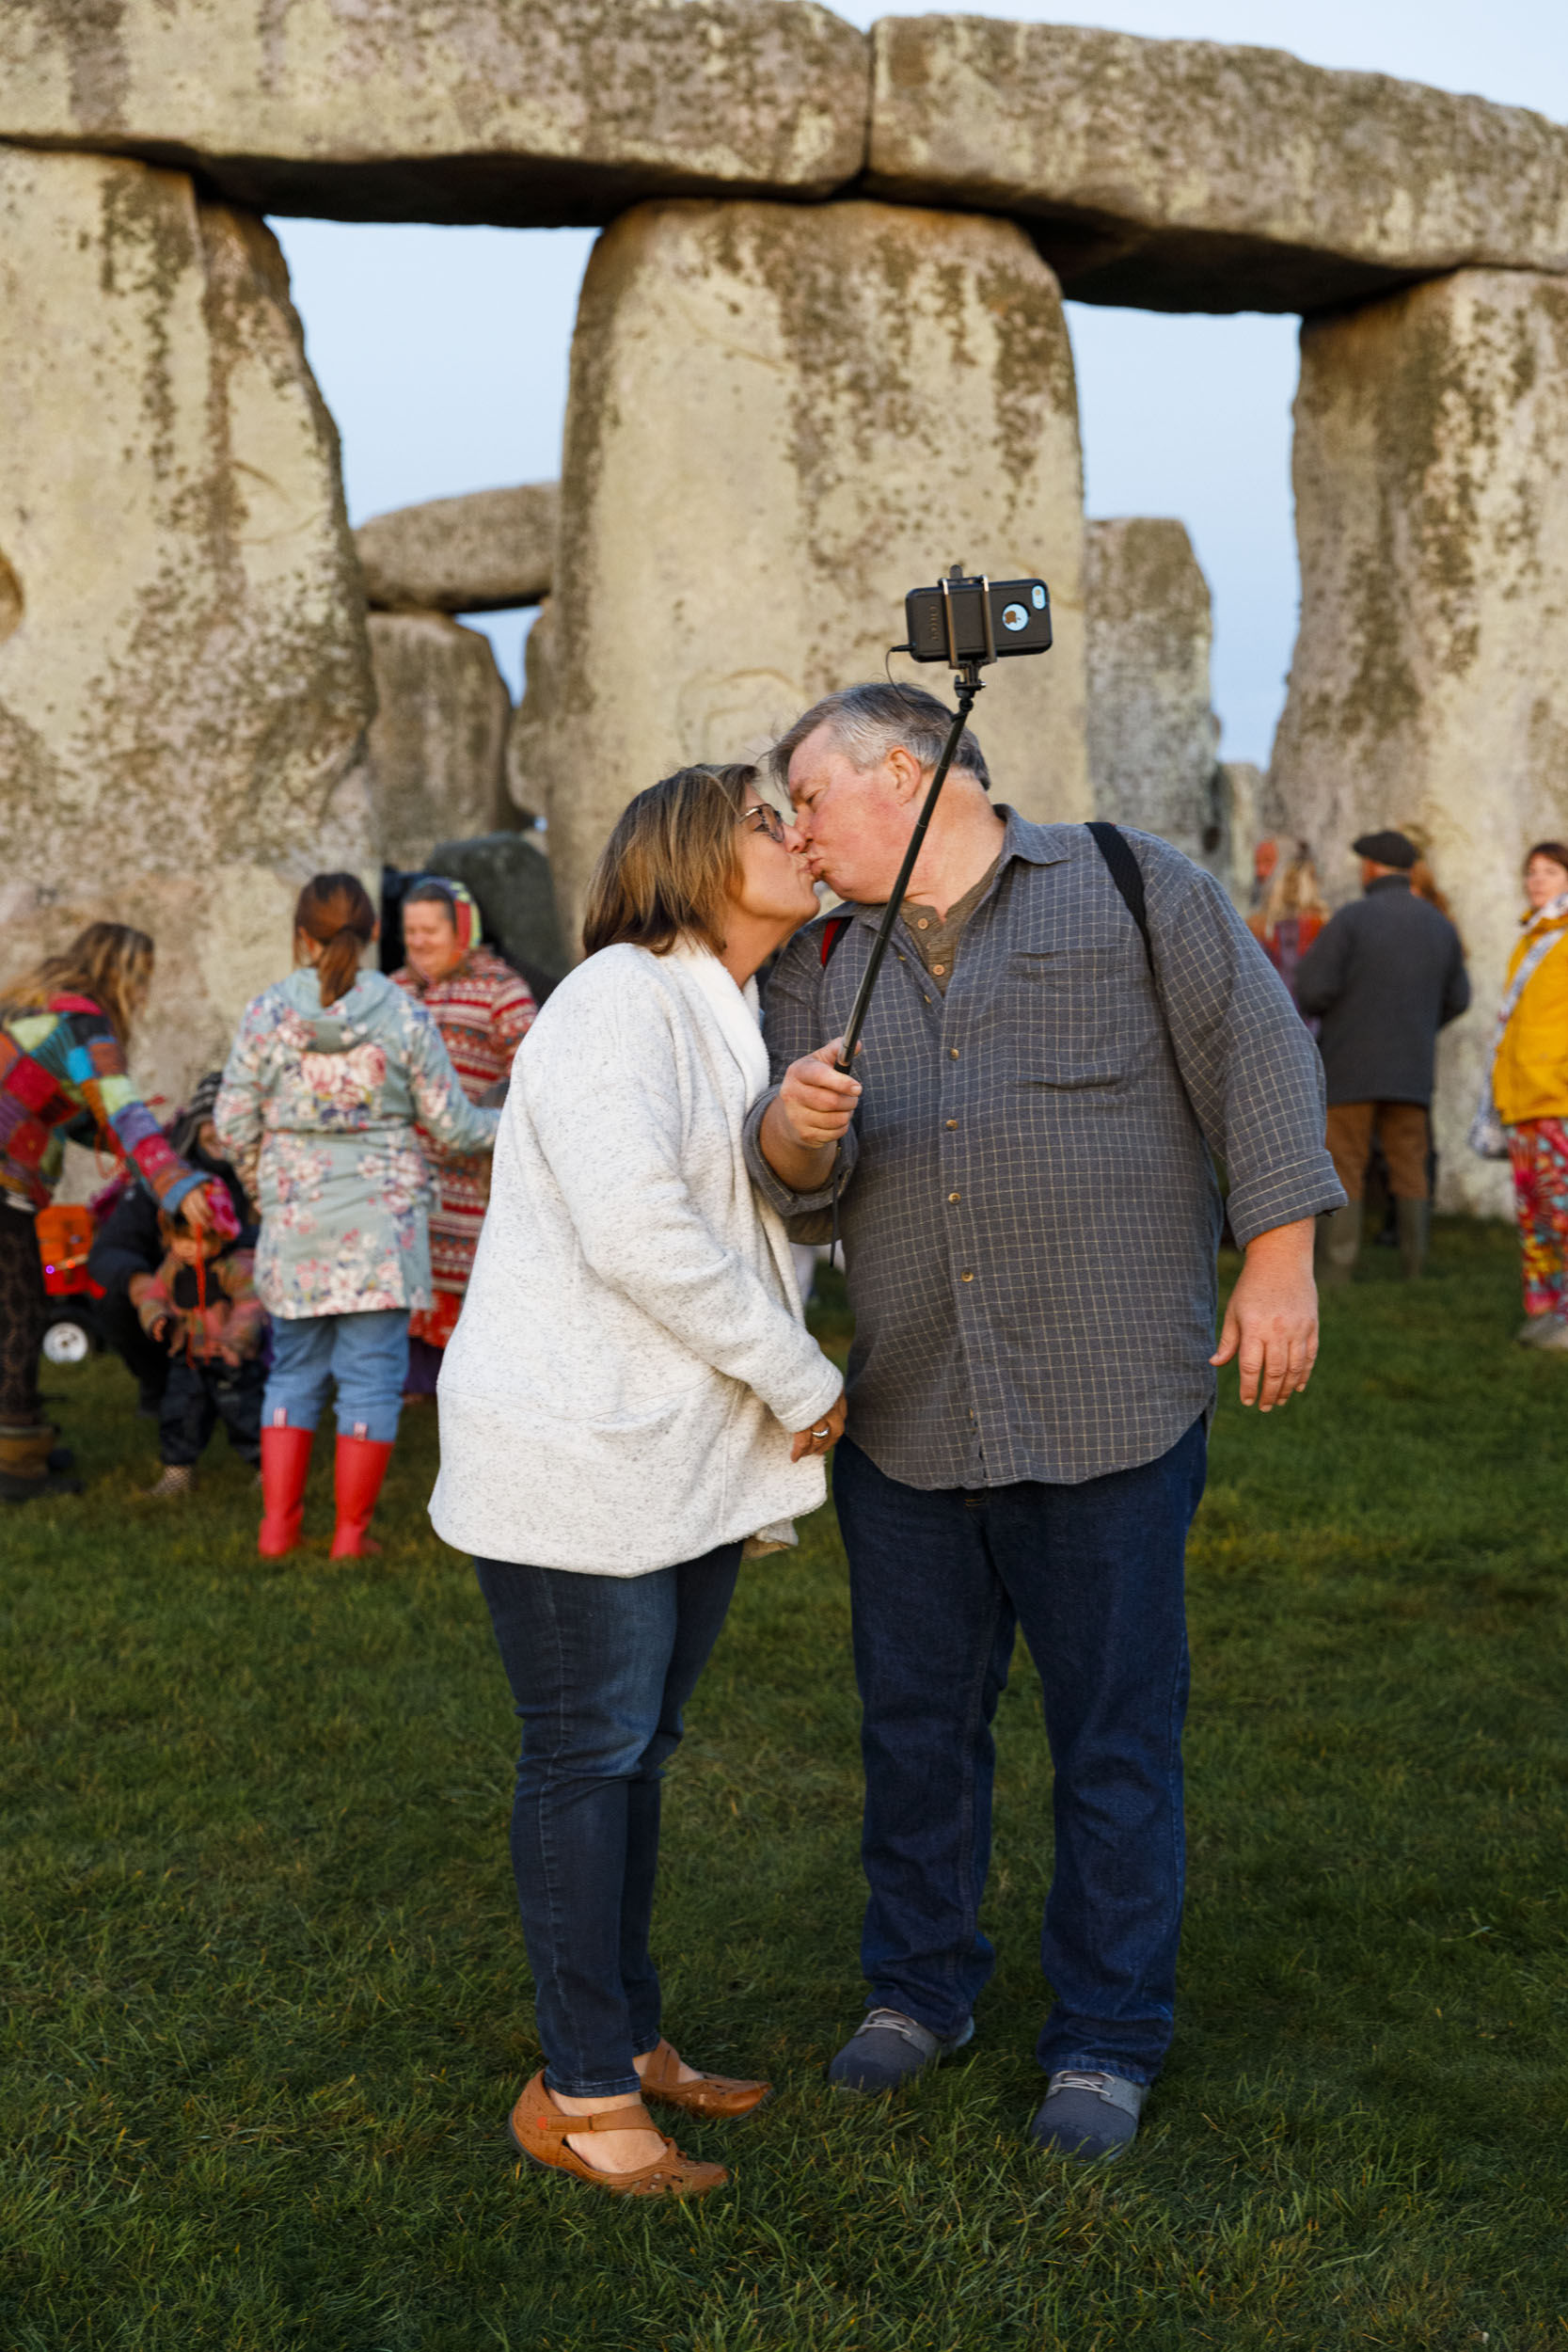 Martin Parr took a photograph of a couple kissing while taking a selfie